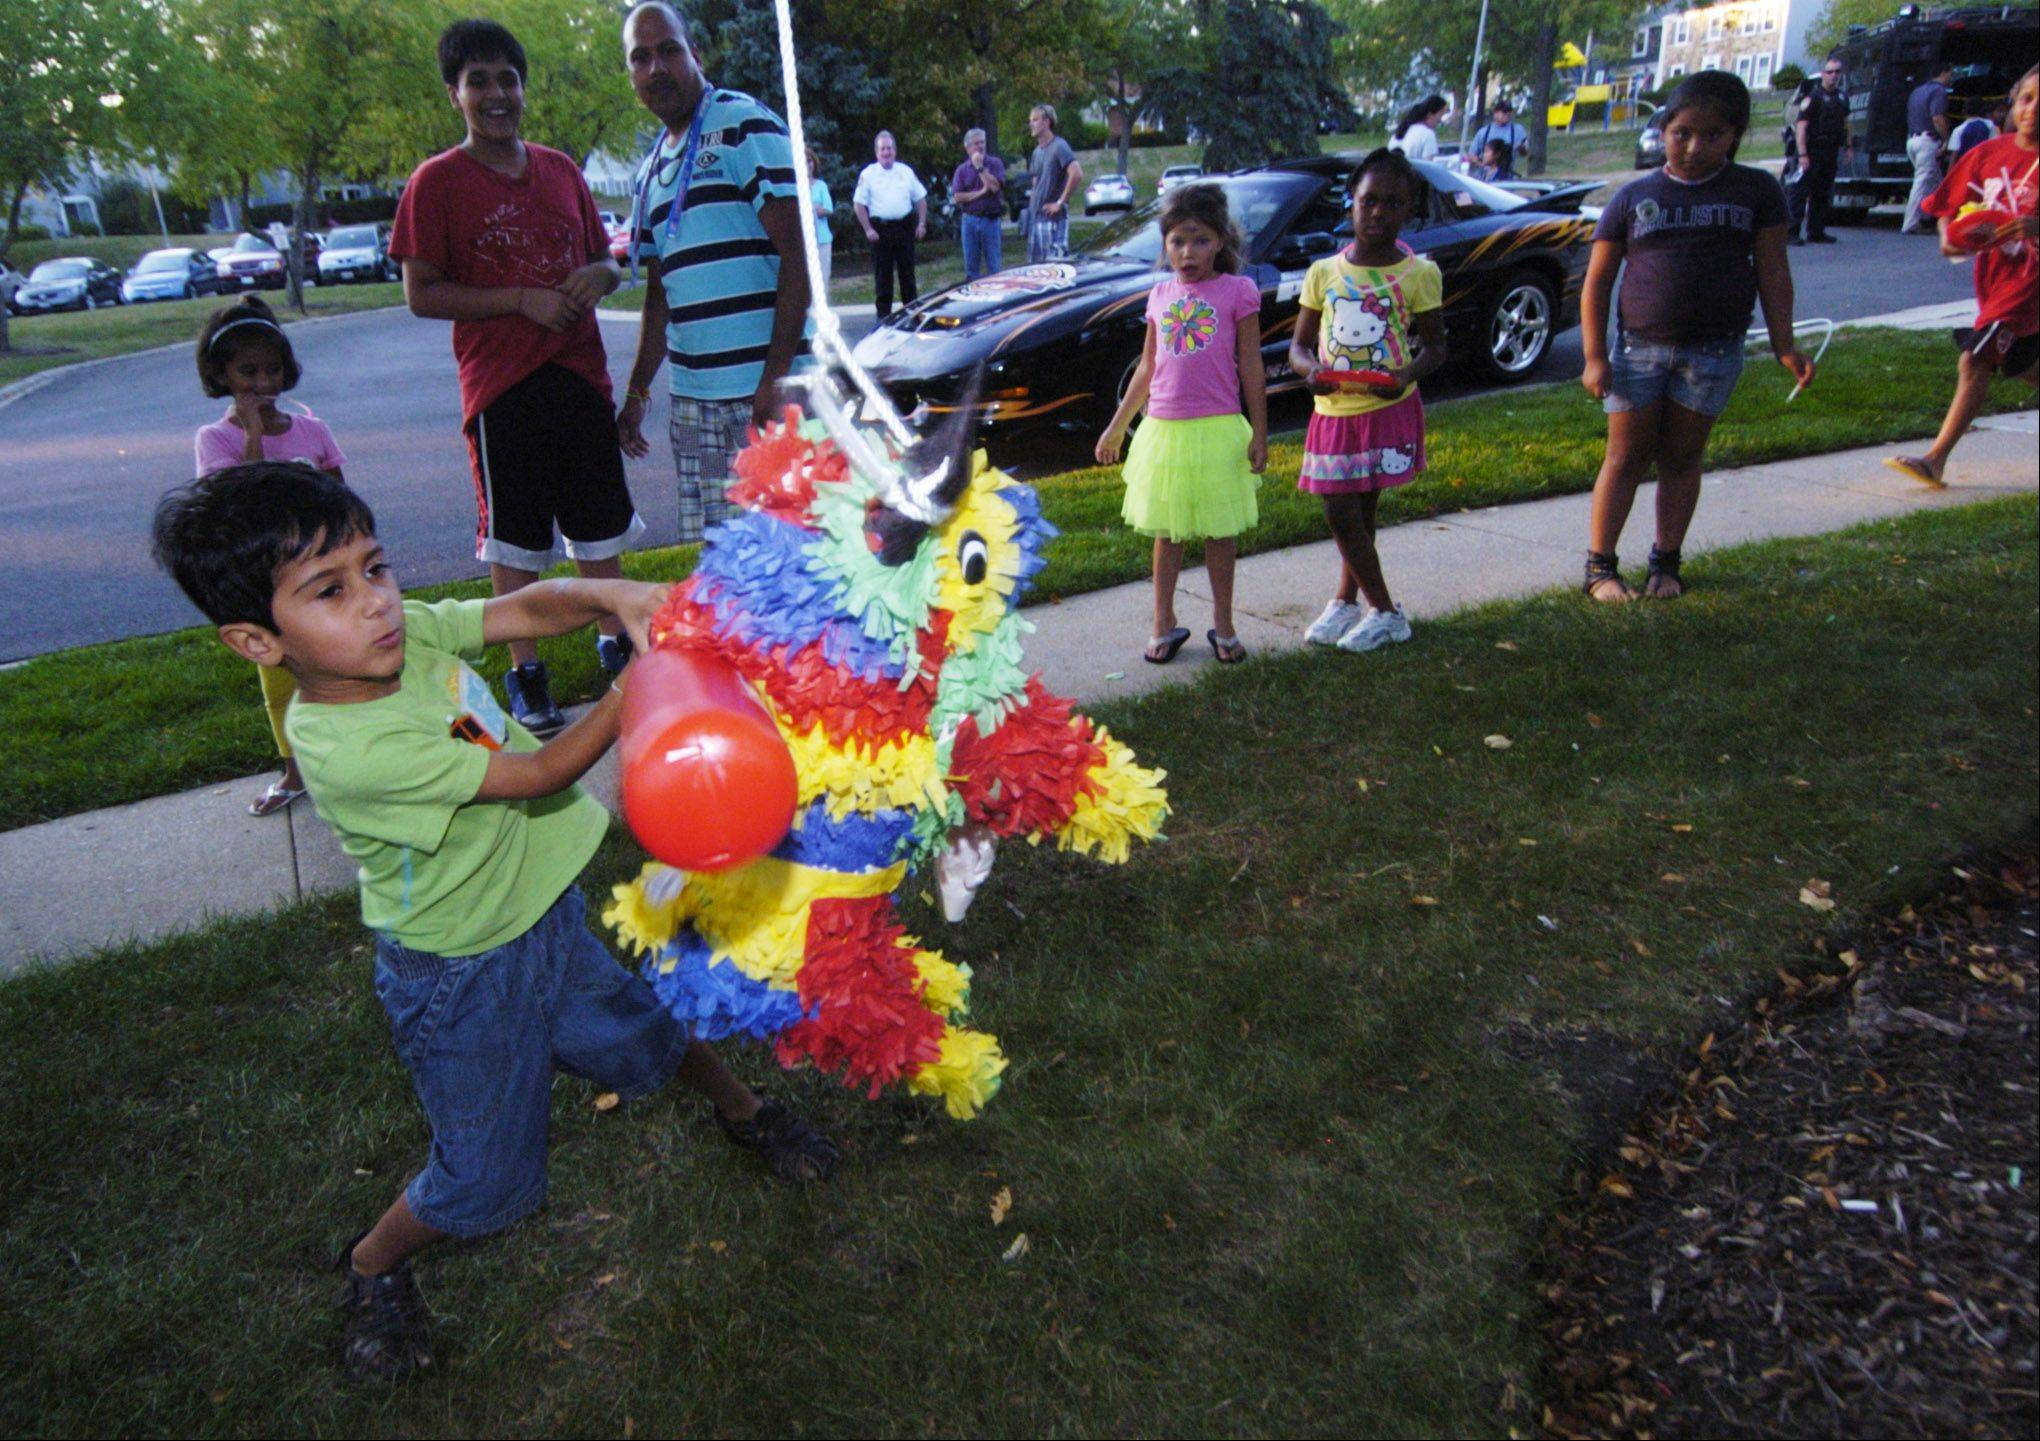 Akshar Rao, 4, of Hoffman Estates takes a swing at a pinata during Tuesday's National Night Out event near Williamsburg Drive in Hoffman Estates.